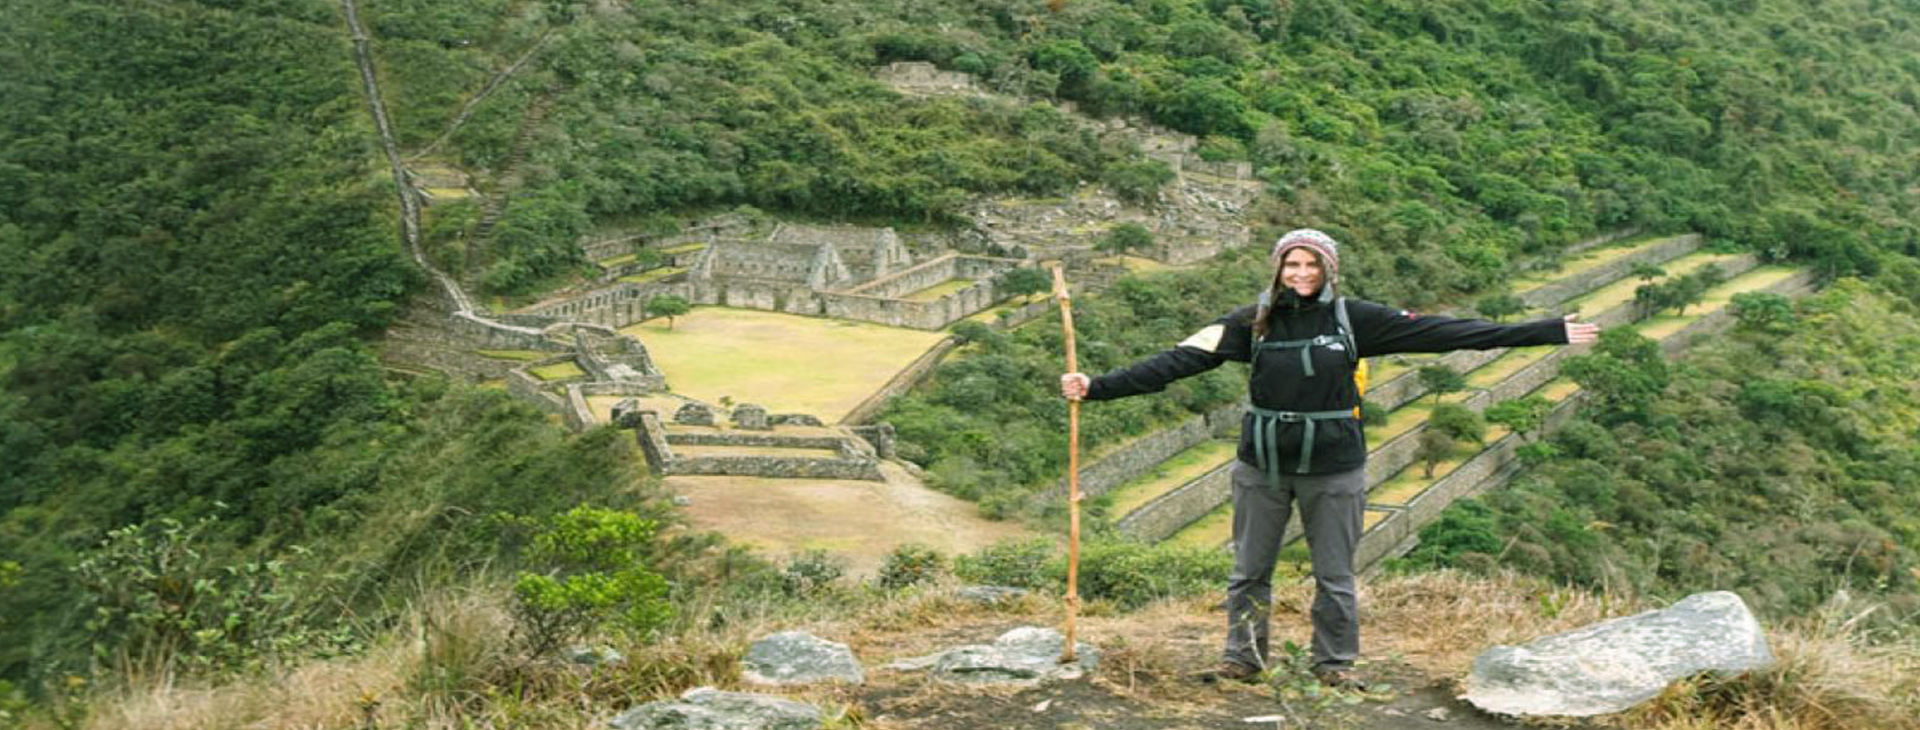 Trip to Choquequirao Trek 4 days - TOURS PERU MACHU PICCHU